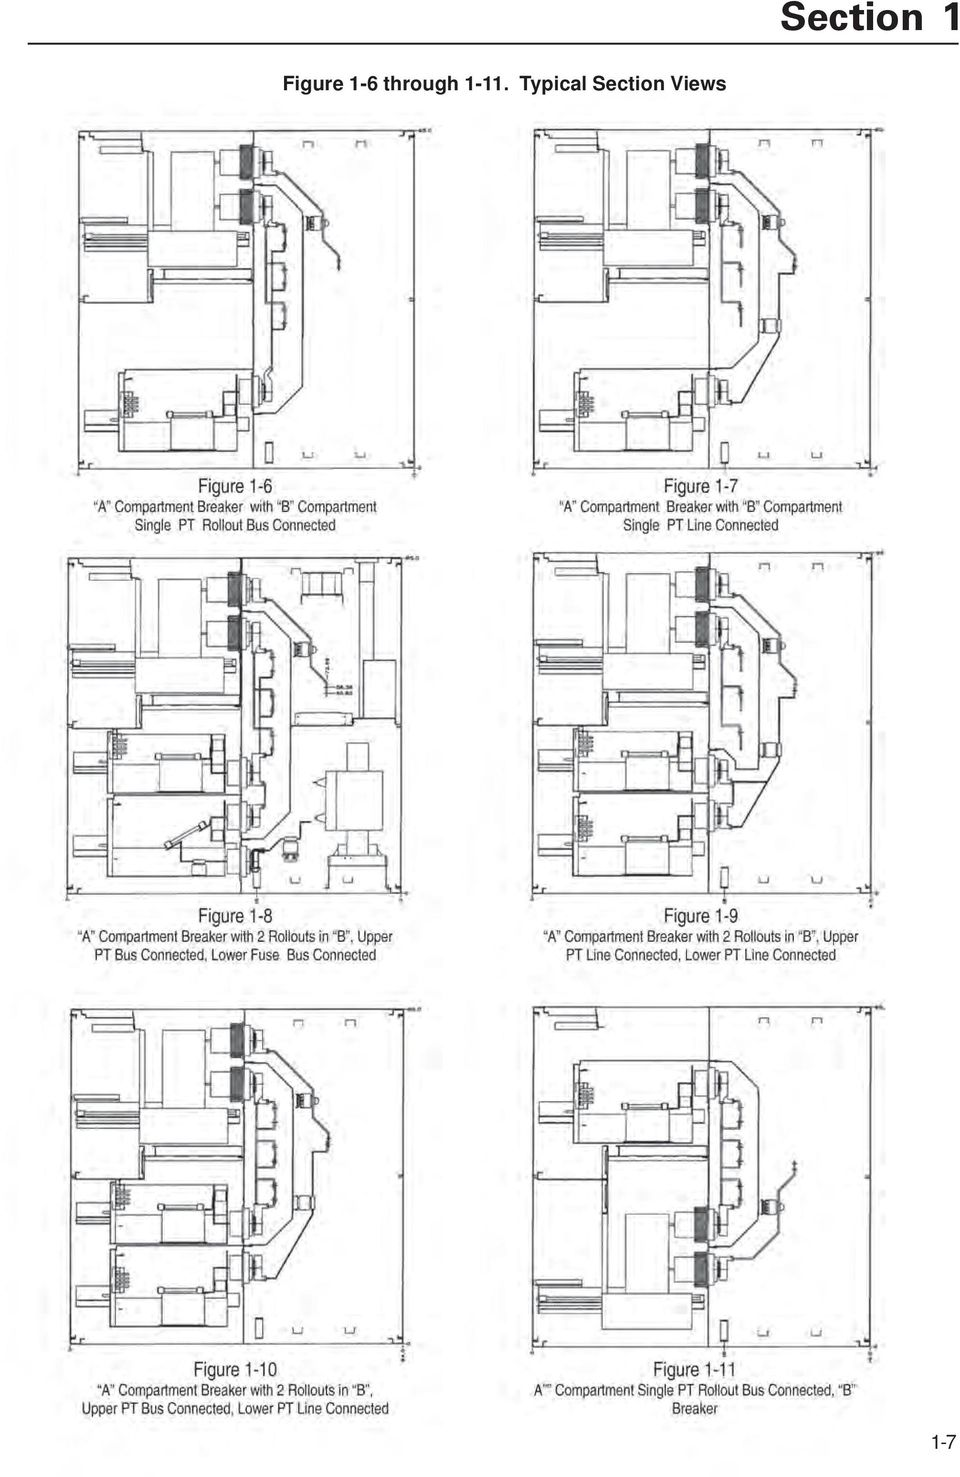 Power Vac Product Family Application Guide Pdf Joslyn Clark Wiring Diagrams Through 1 11